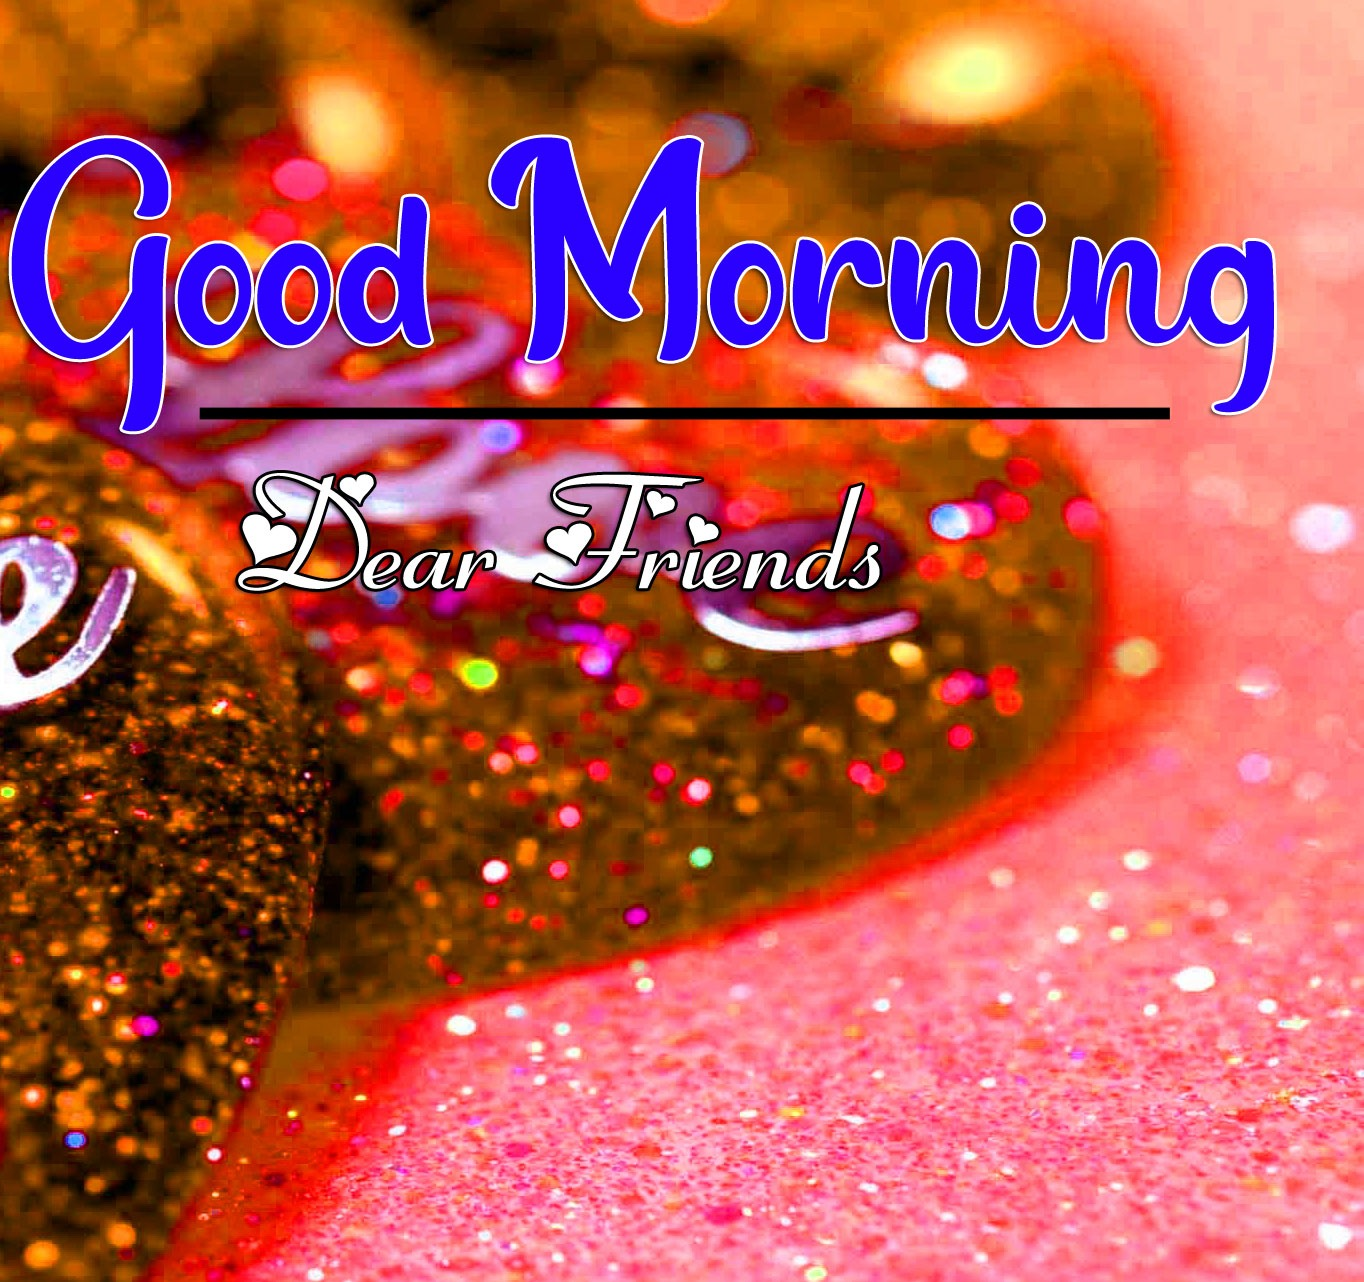 Top Good Morning Images Free